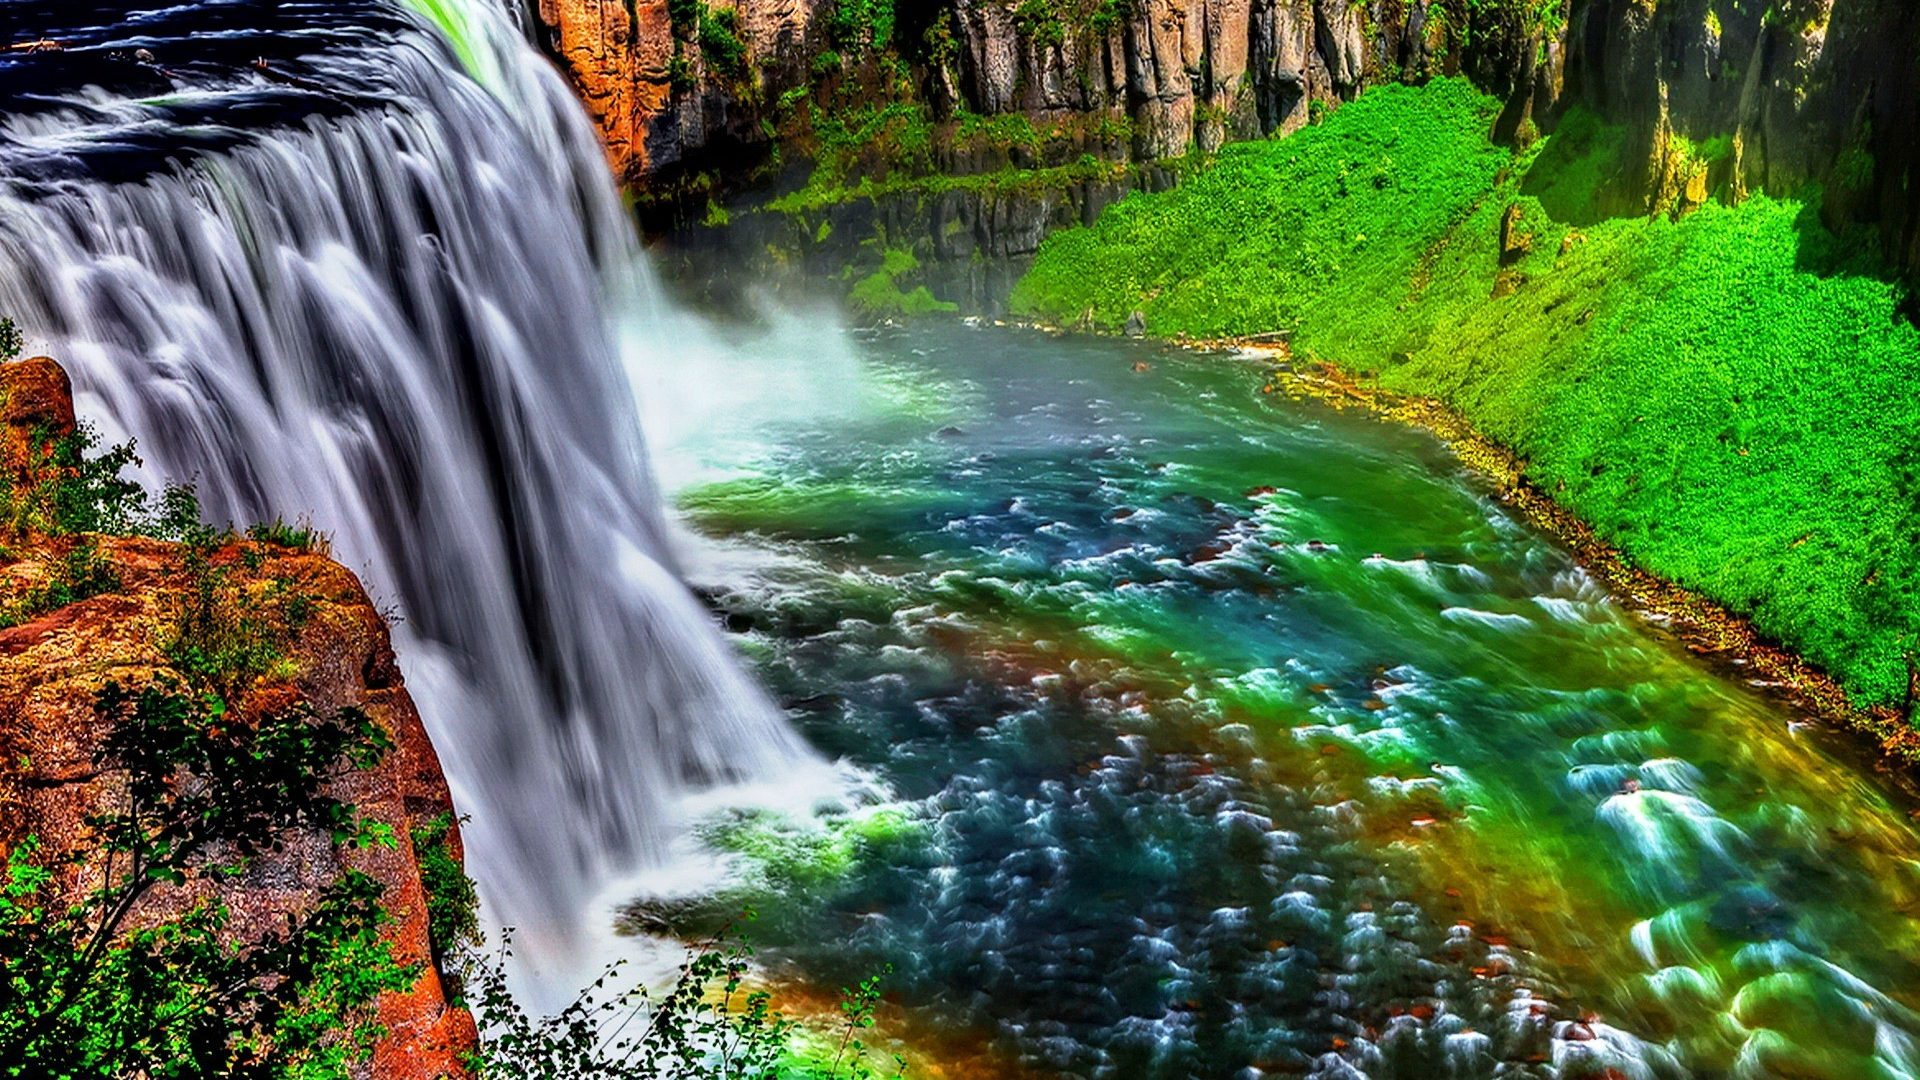 image waterfalls trees natural animals calm fishes colorful nature